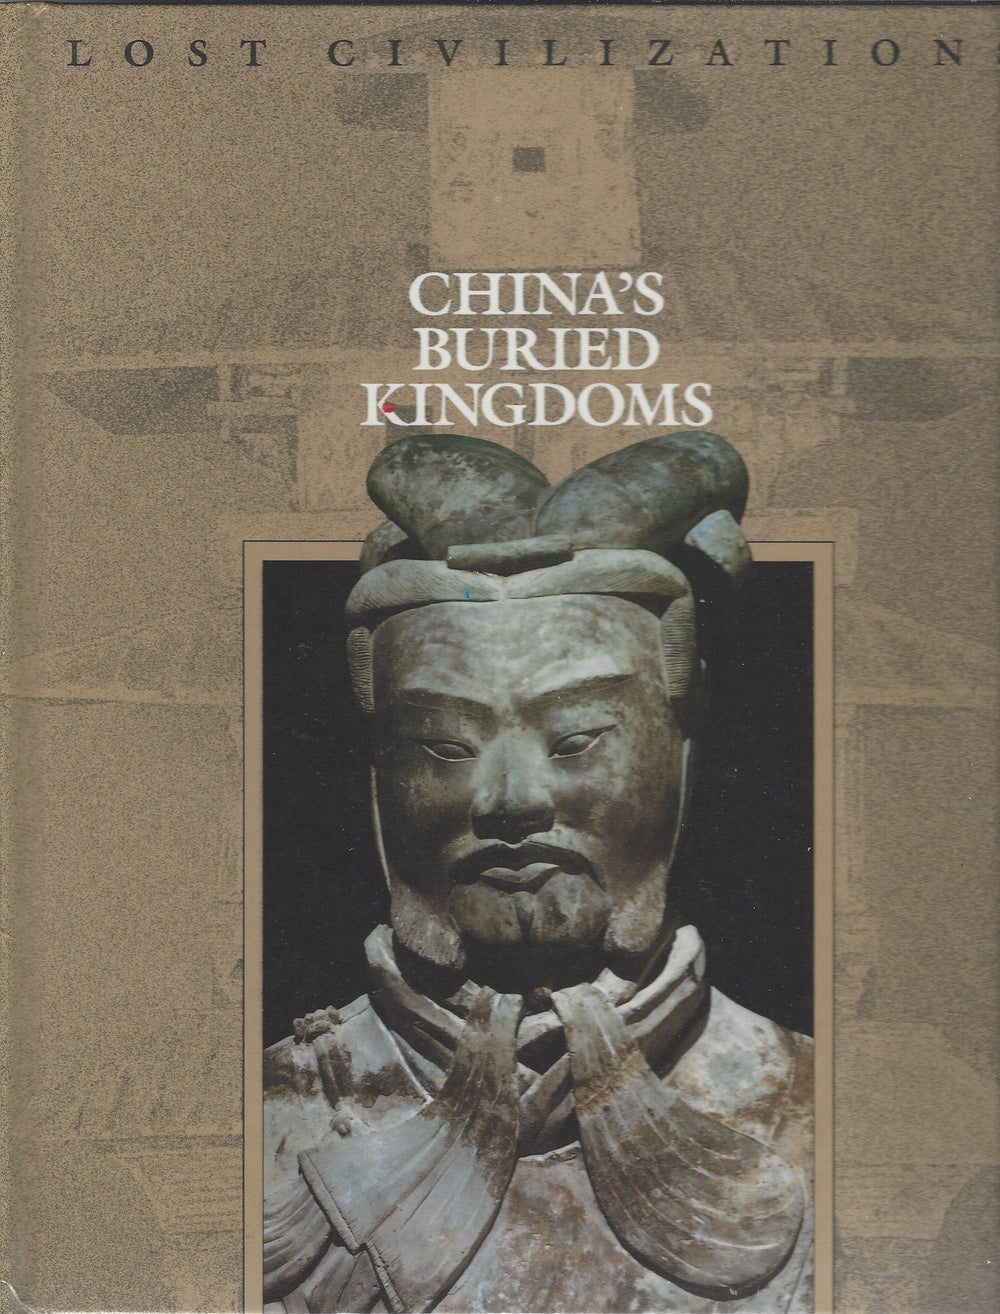 TIME-LIFE: Lost Civilizations; China's Buried Kingdoms (1993)